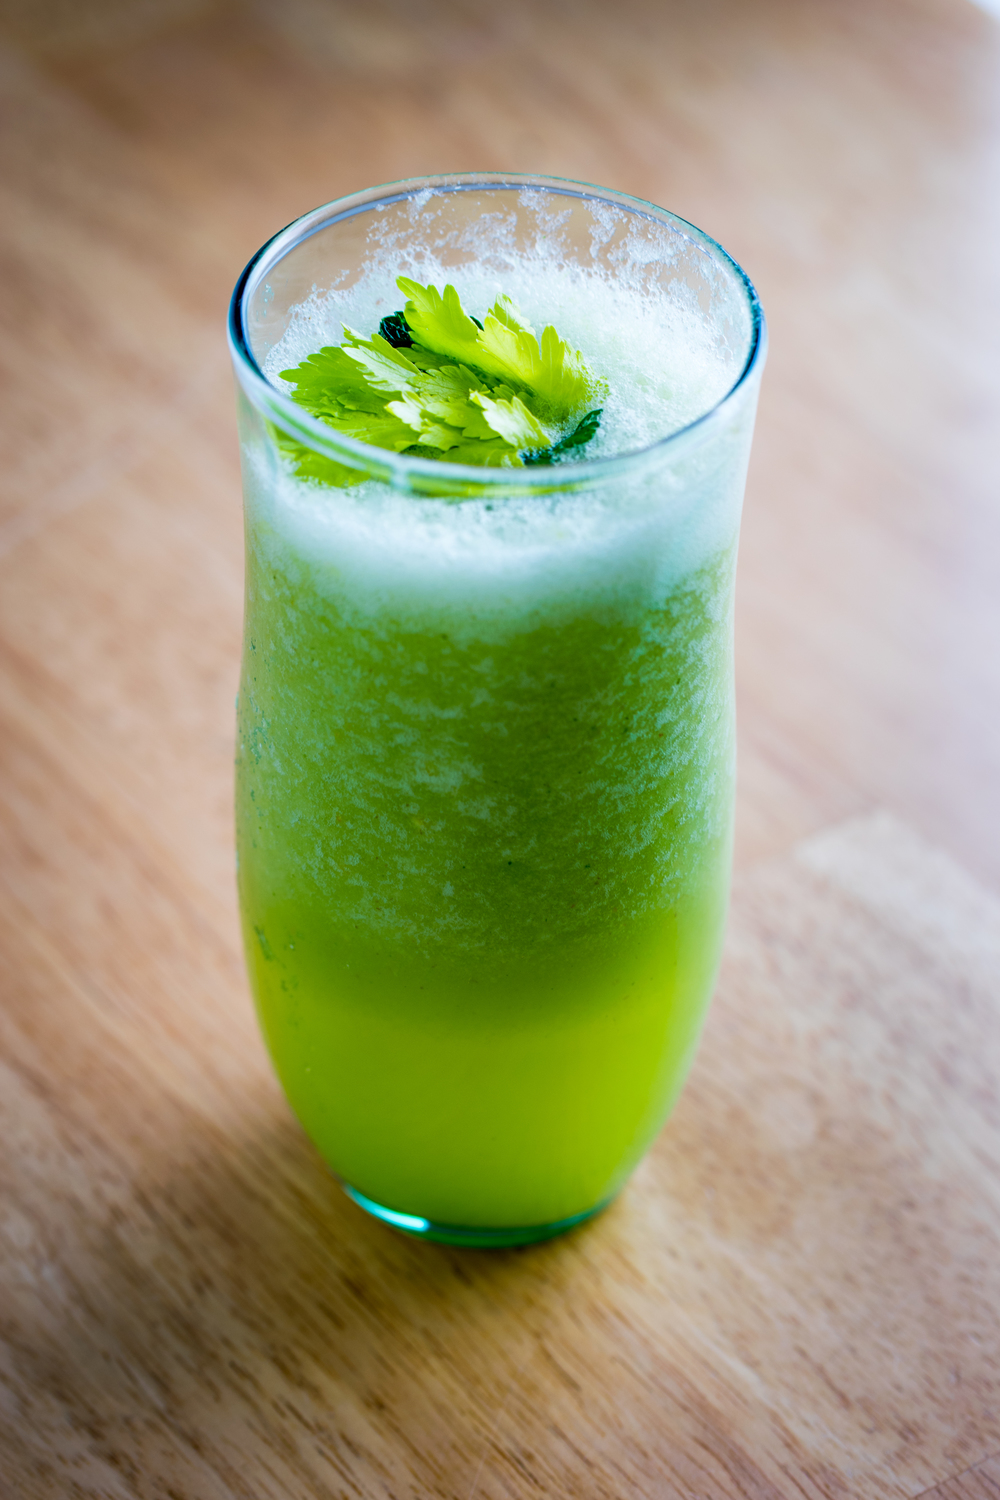 Cucumber Lemon Celery Refresher